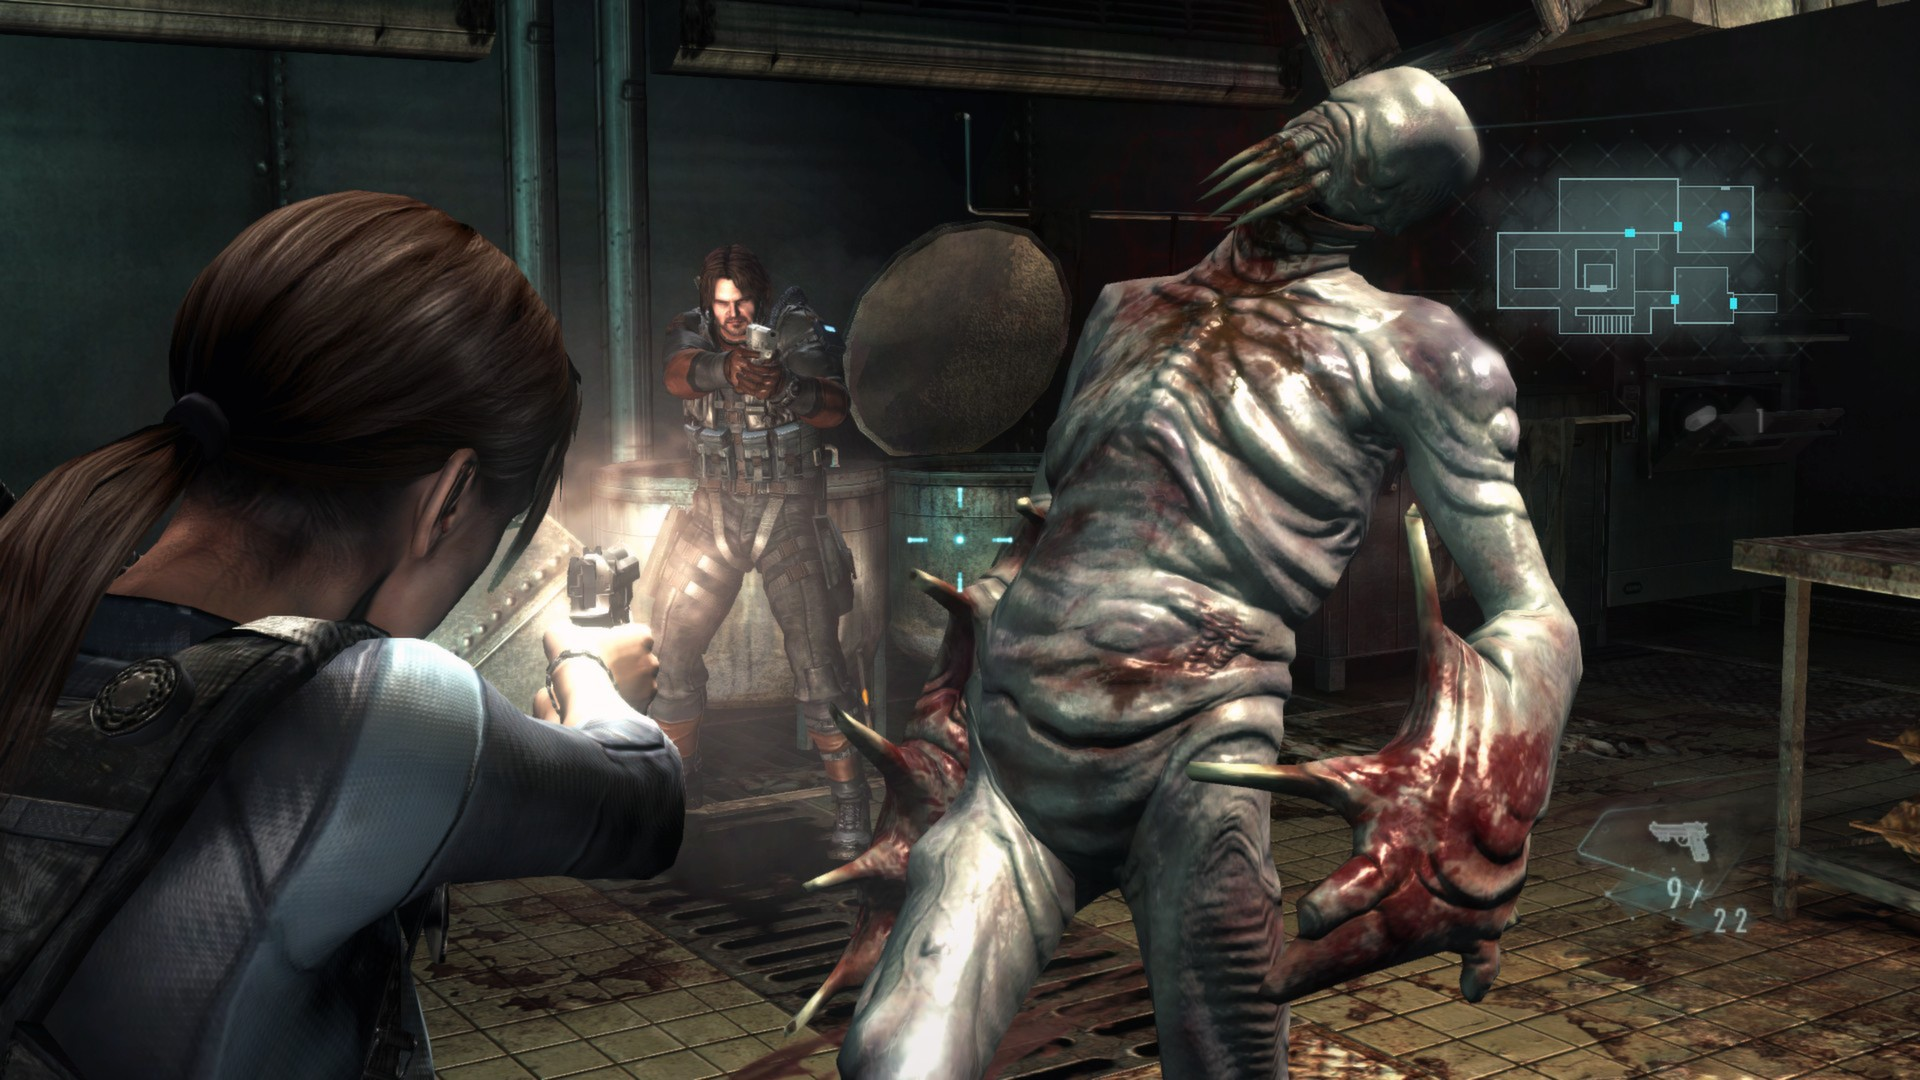 Resident Evil Revelations (RU/CIS) steam key